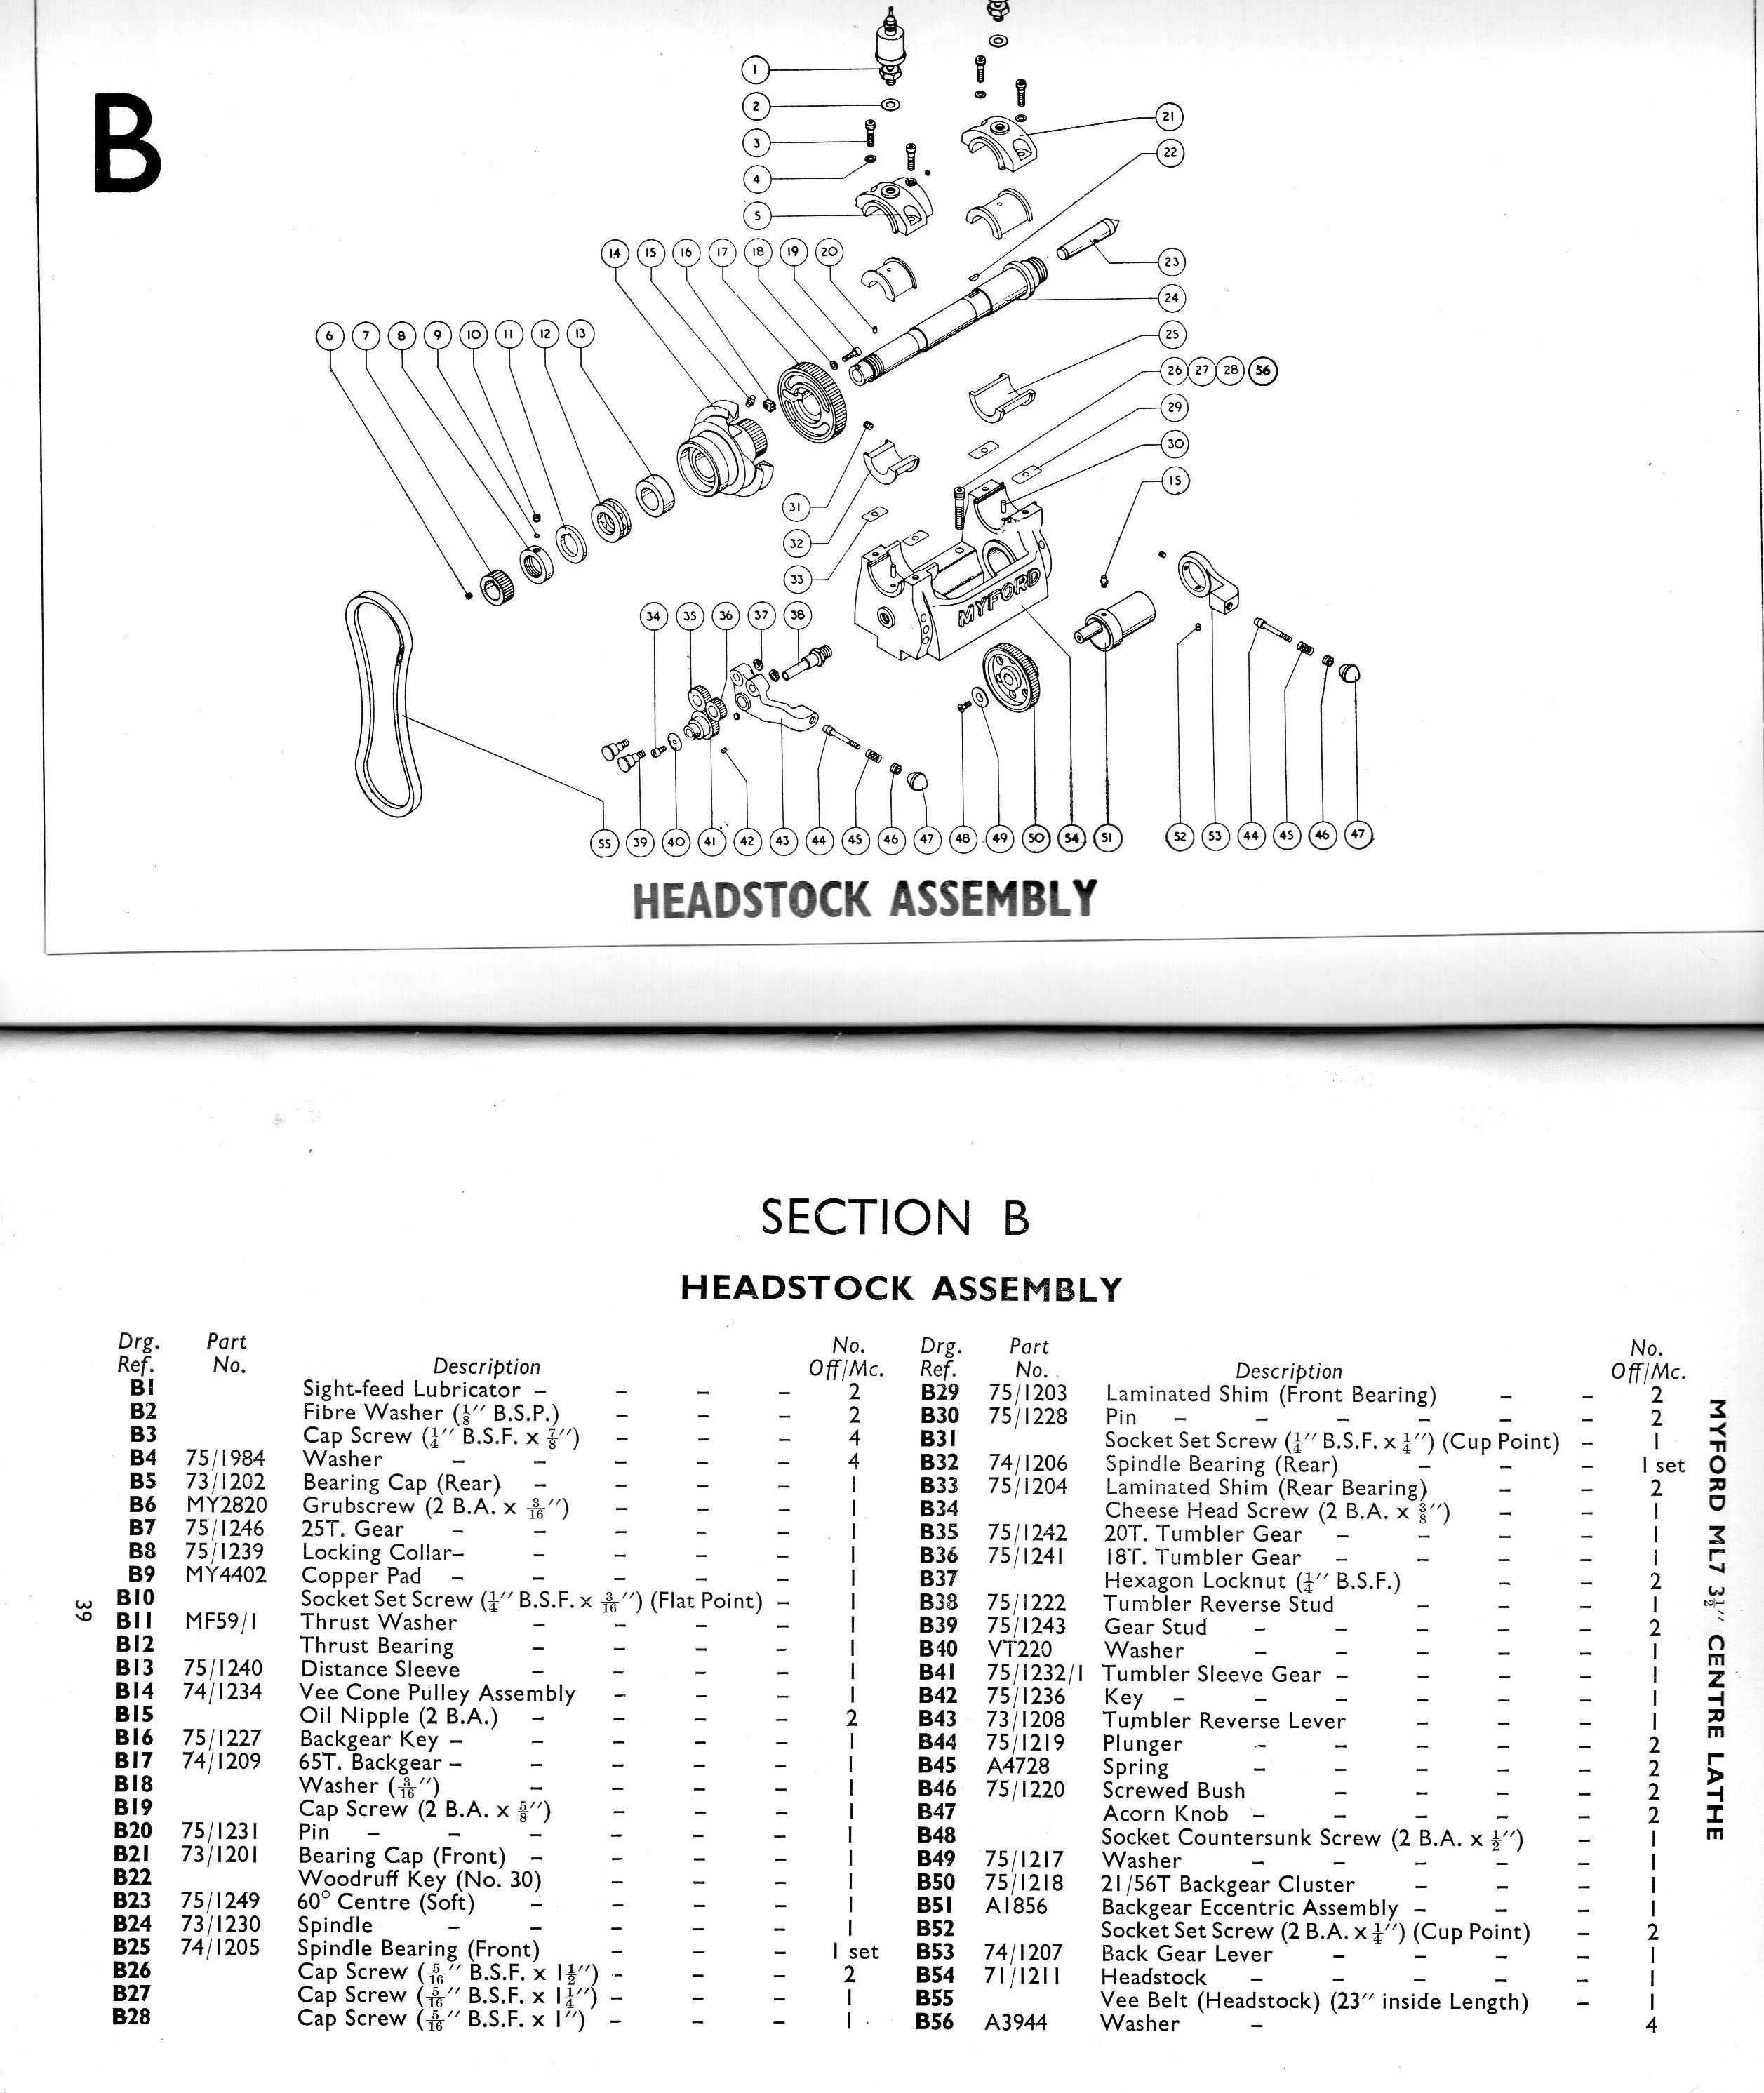 hight resolution of exploded parts diagram engineering tools lathe odd stuff freaky things tower